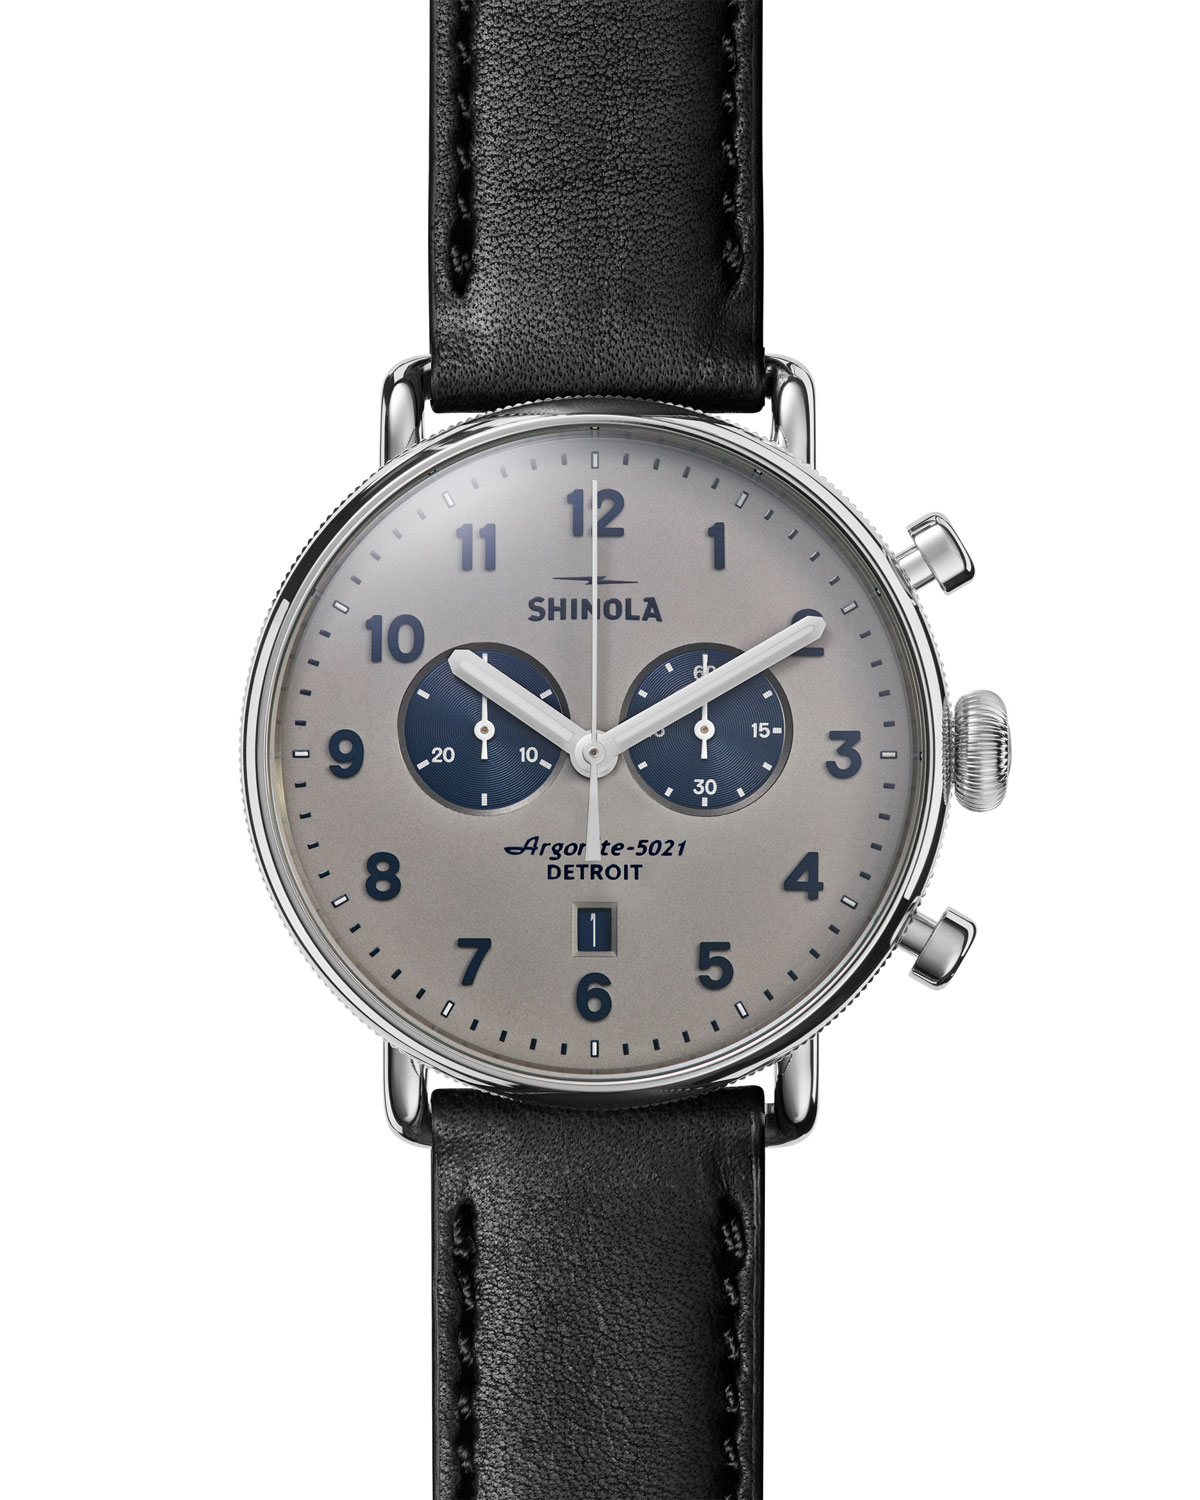 43mm Canfield Chronograph Watch